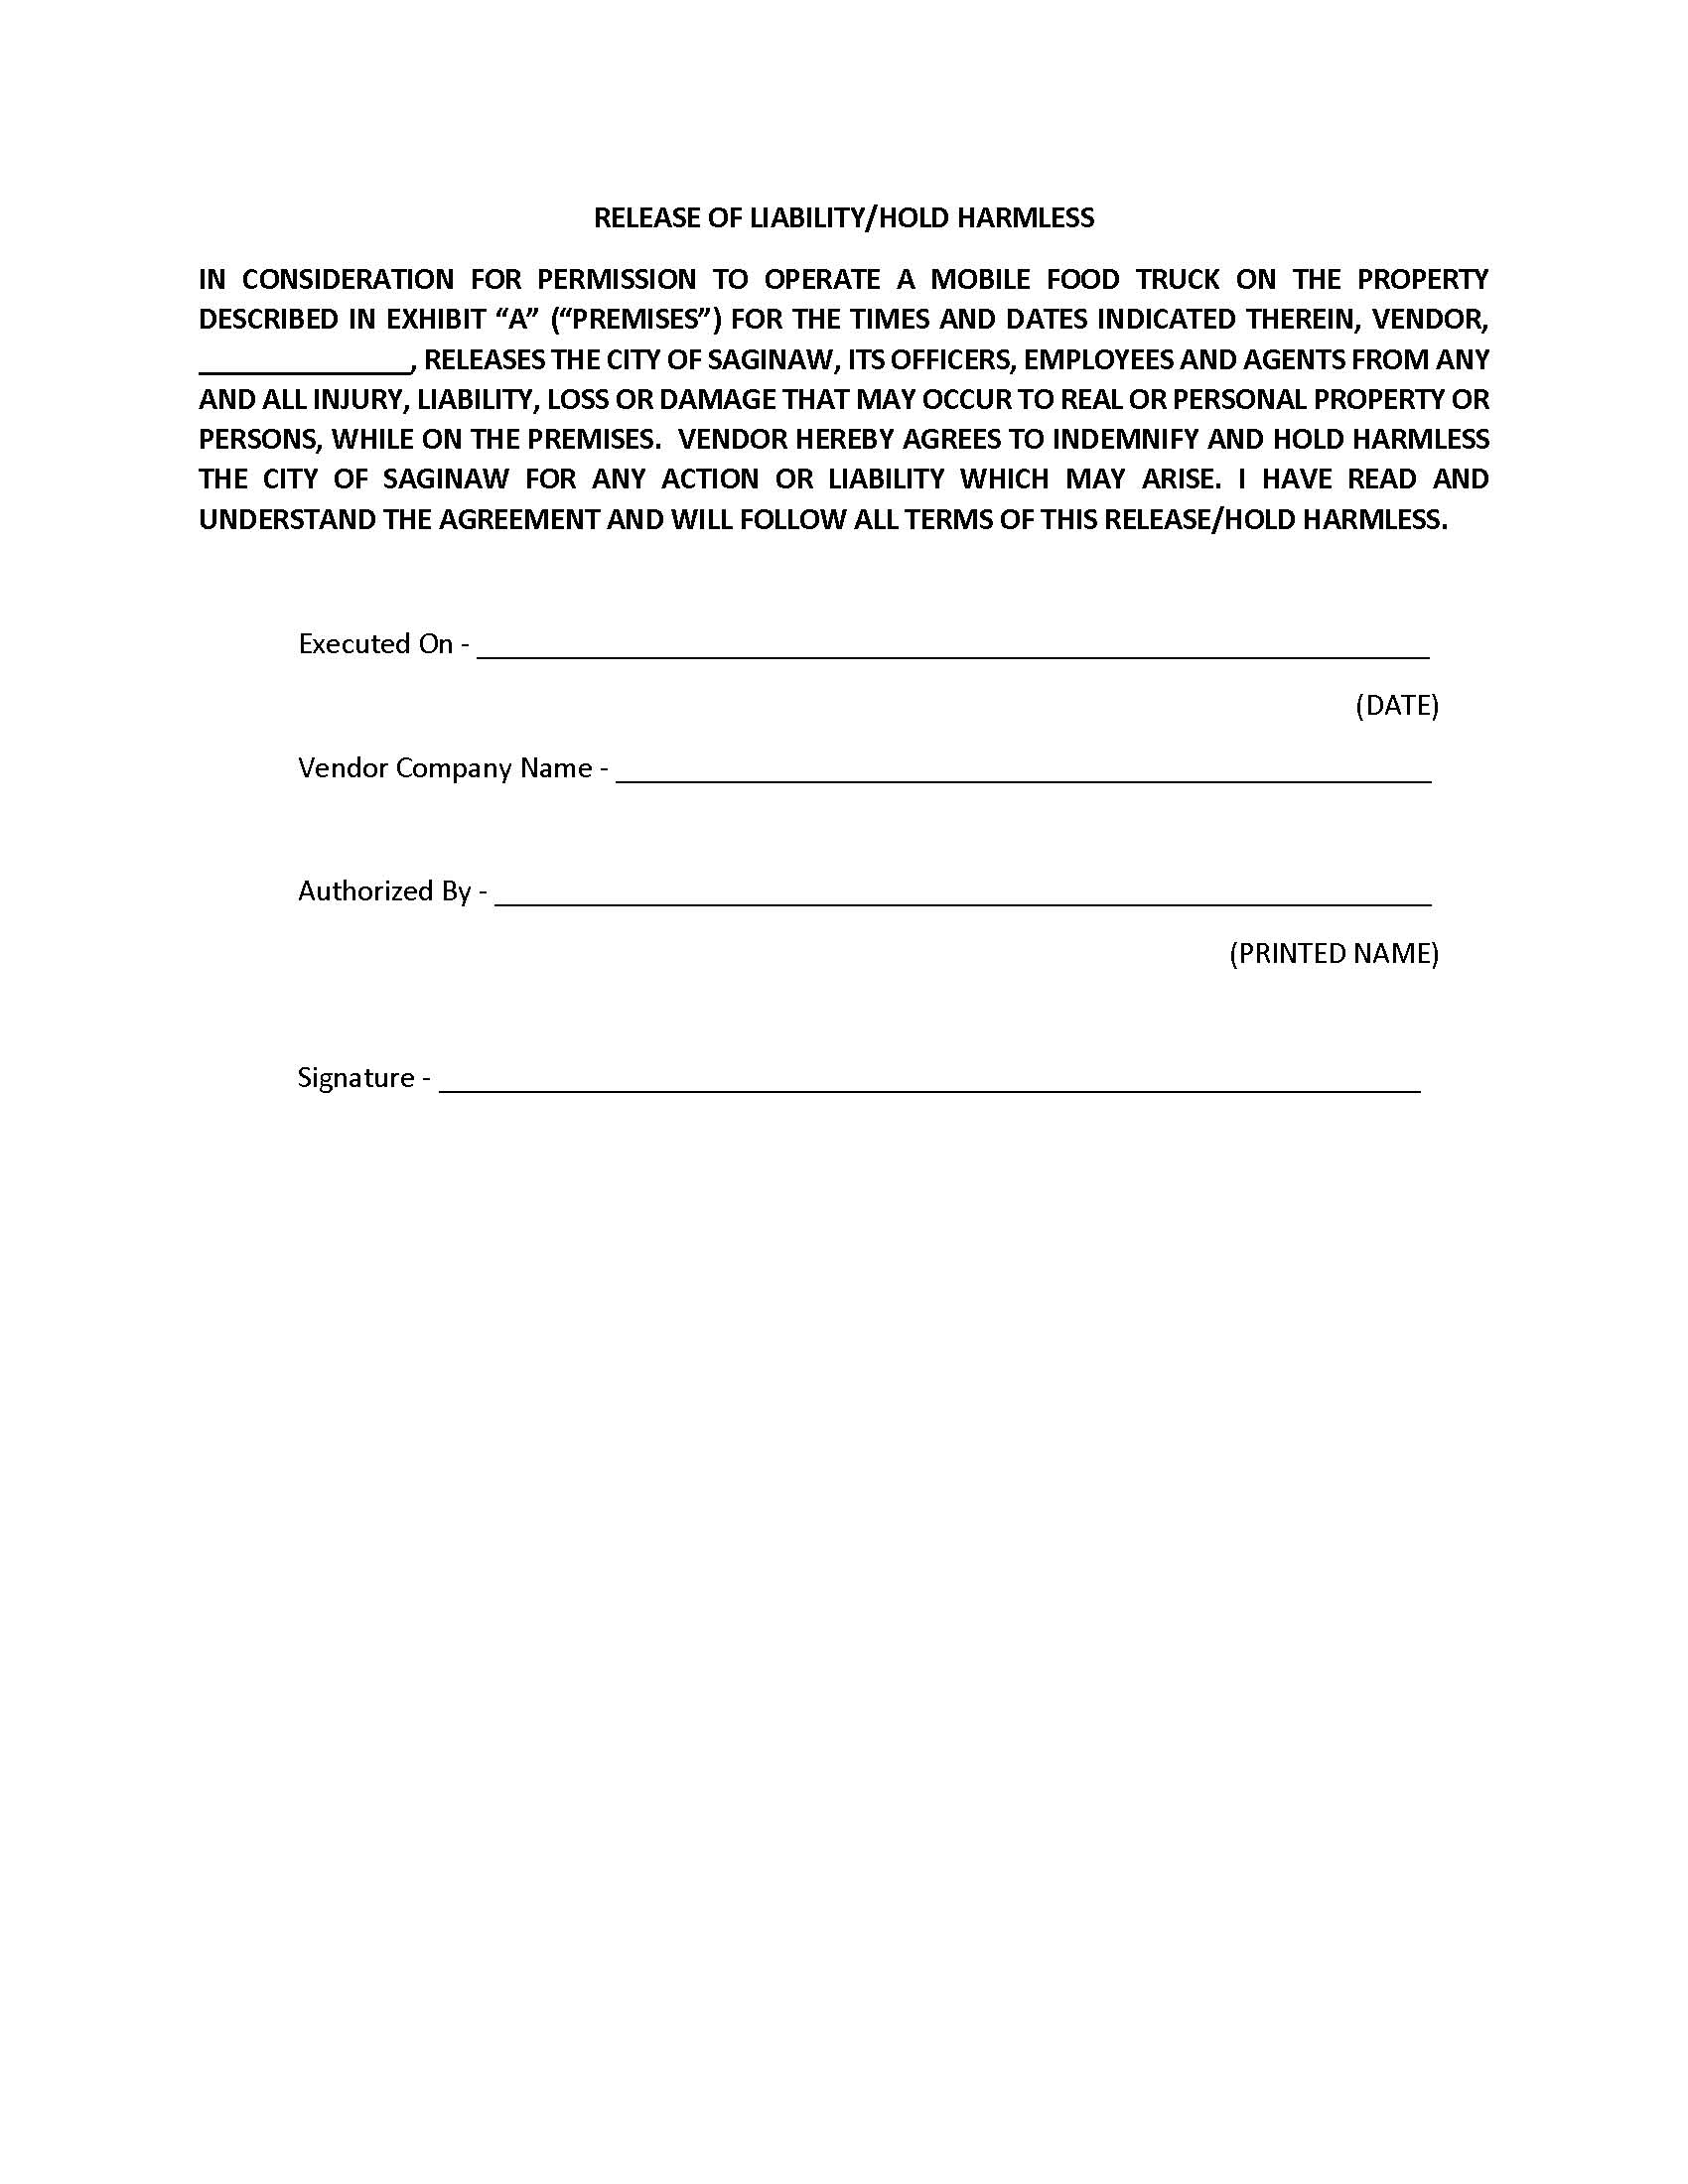 MOBILE FOOD UNIT PERMIT - APPLICATION_Page_4